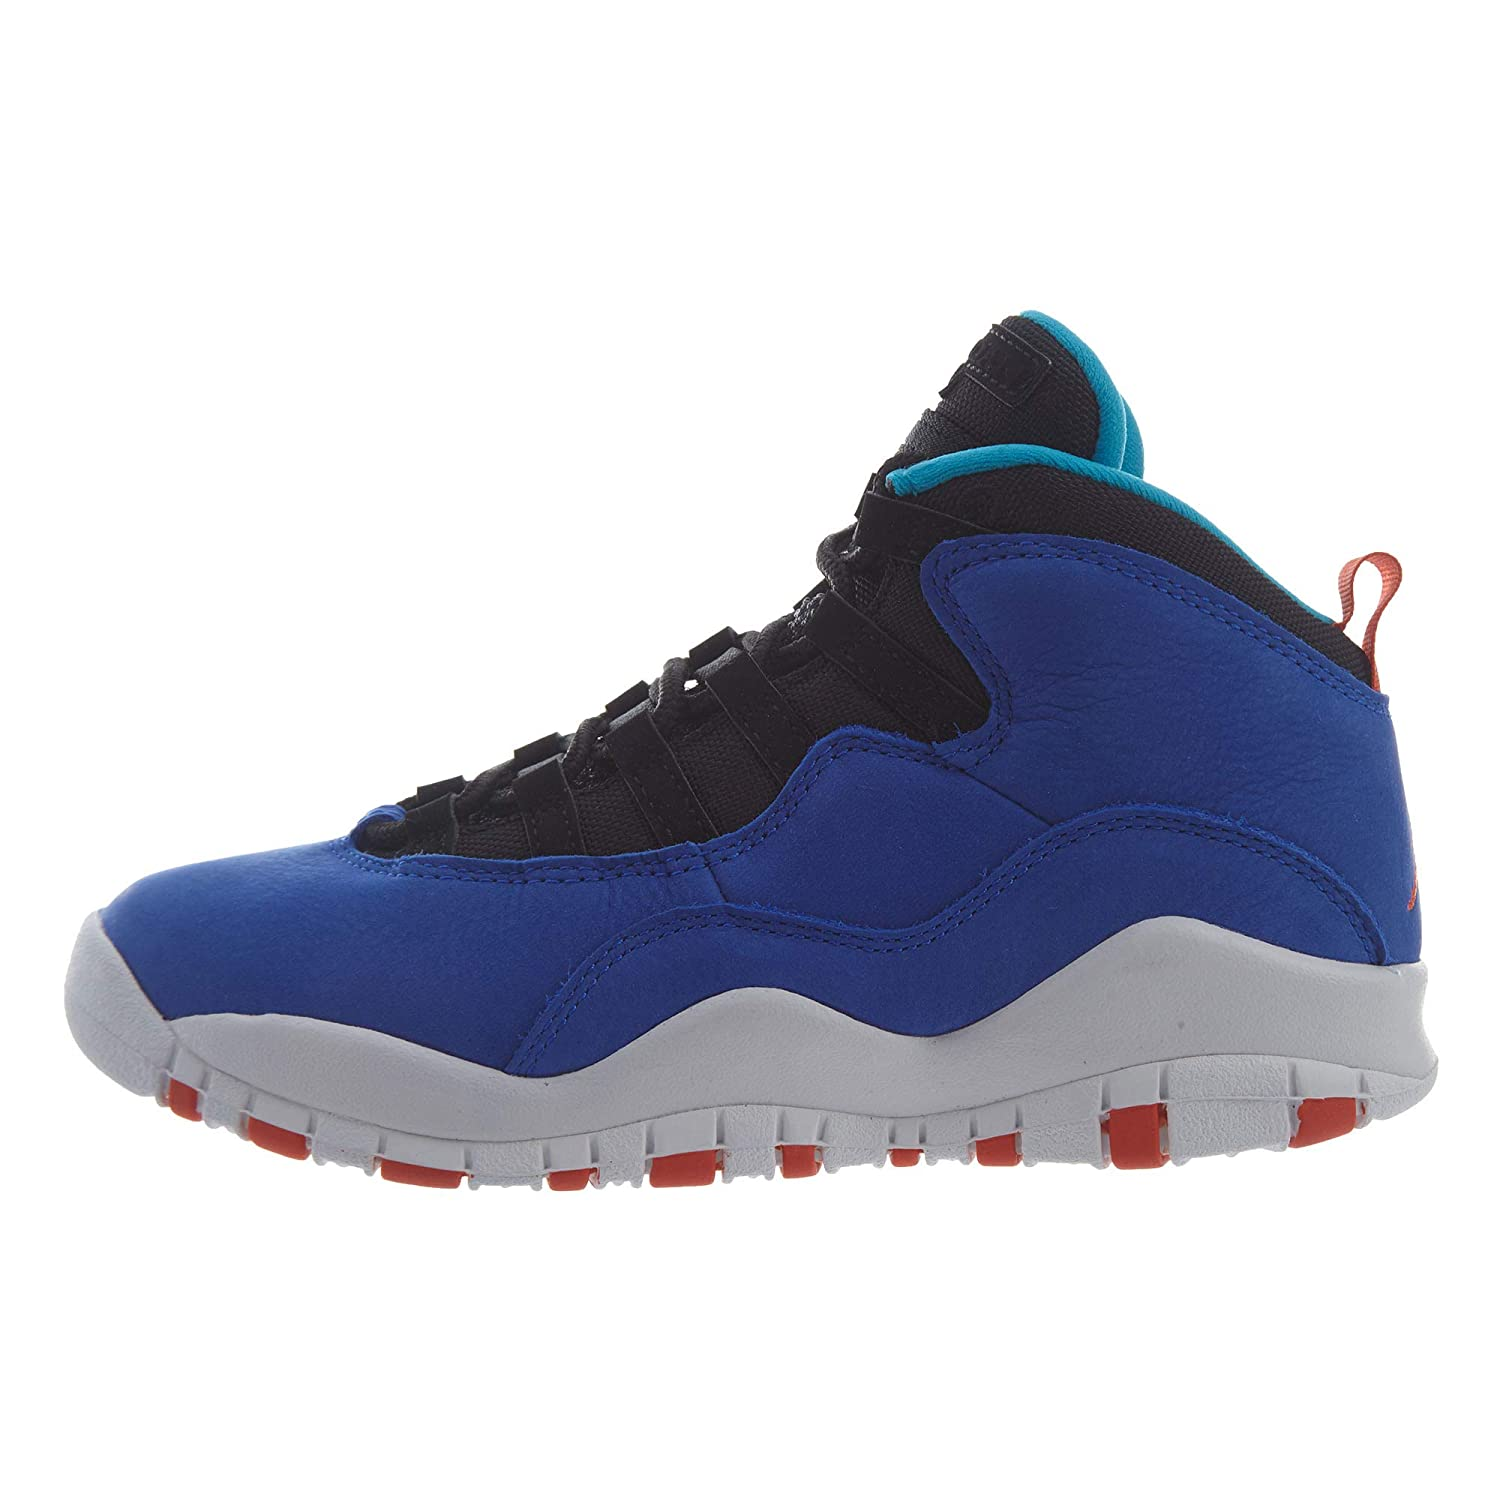 new product d6e92 7fbd8 Amazon.com   Nike Air Jordan 10 Retro Big Kid s Shoe Racer Blue Team  Orange Black 310806-408 (6 M US)   Basketball